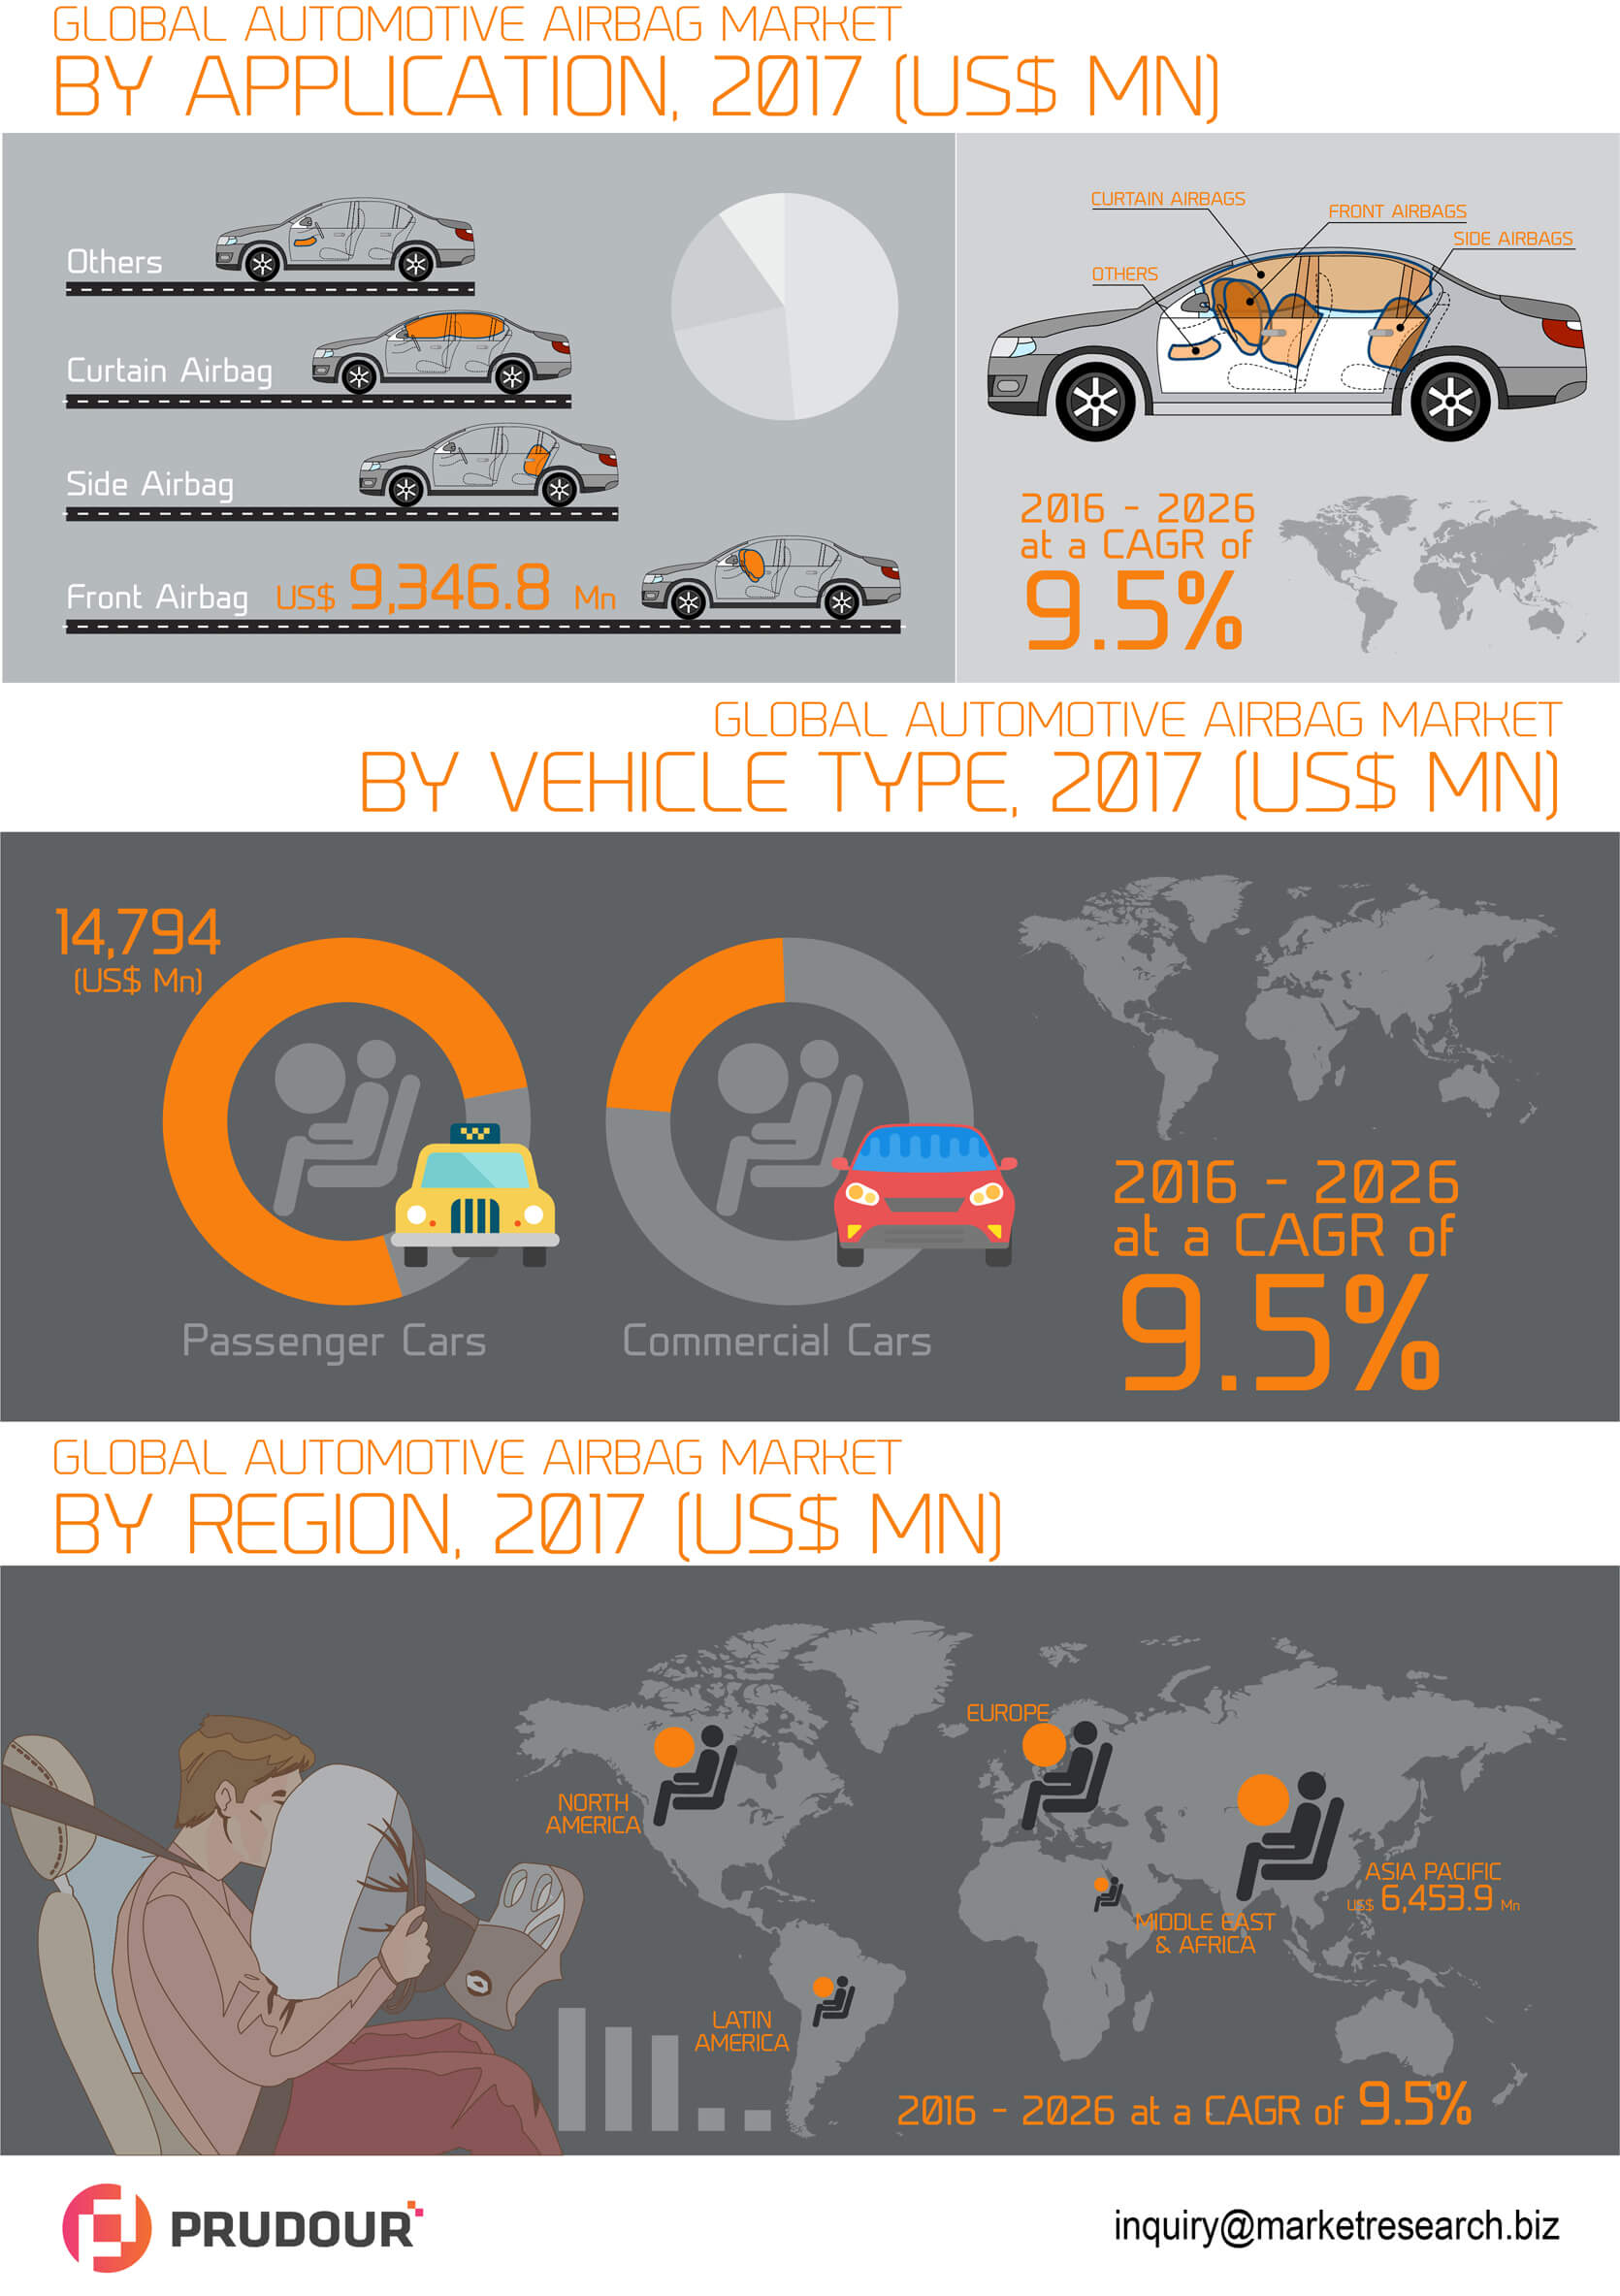 2021 US$ 115,383.2 Mn: Global Automotive Airbag Market is estimated to touch US$ 115,383.2 Mn By 2021